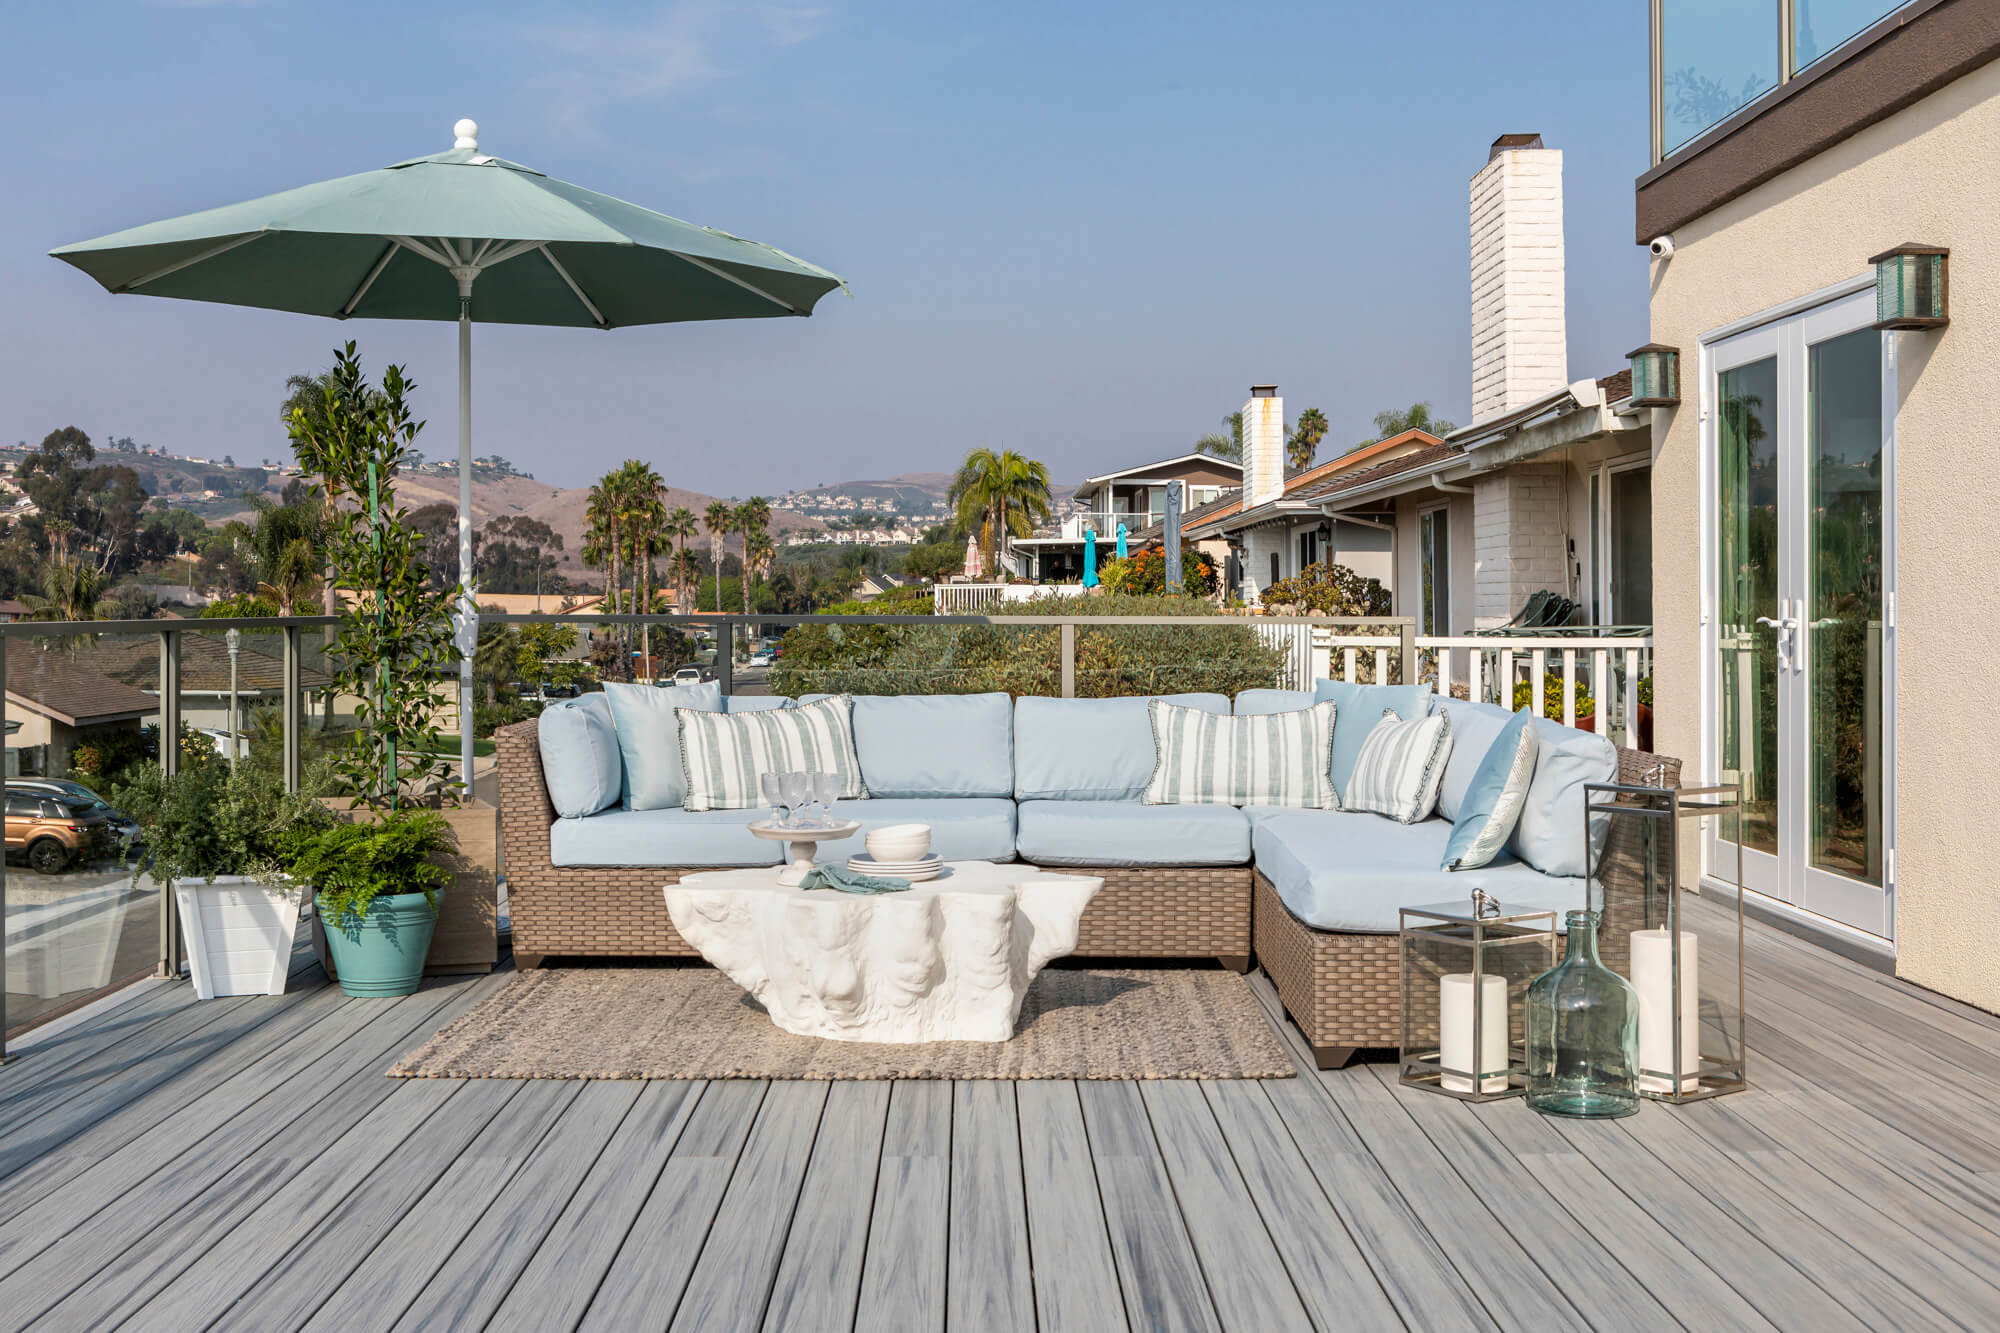 San Clemente Hillside Deck Addition